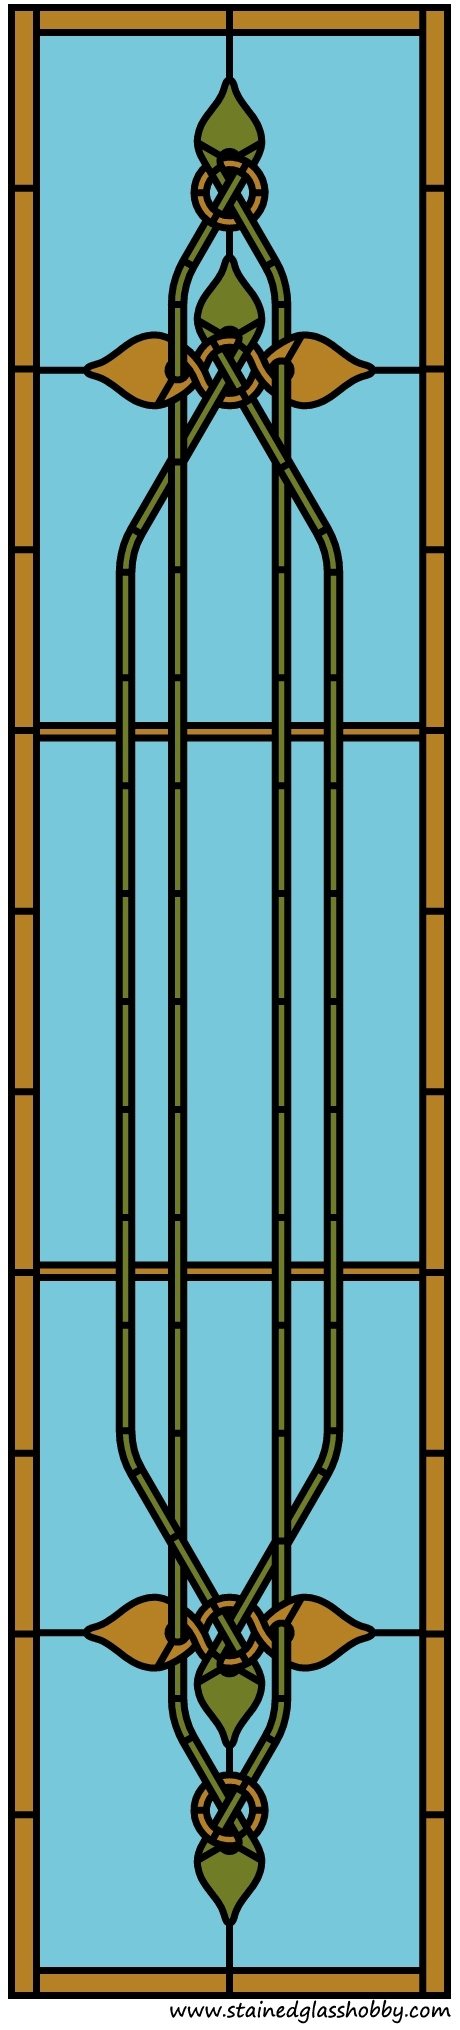 Celt stained glass panel pattern